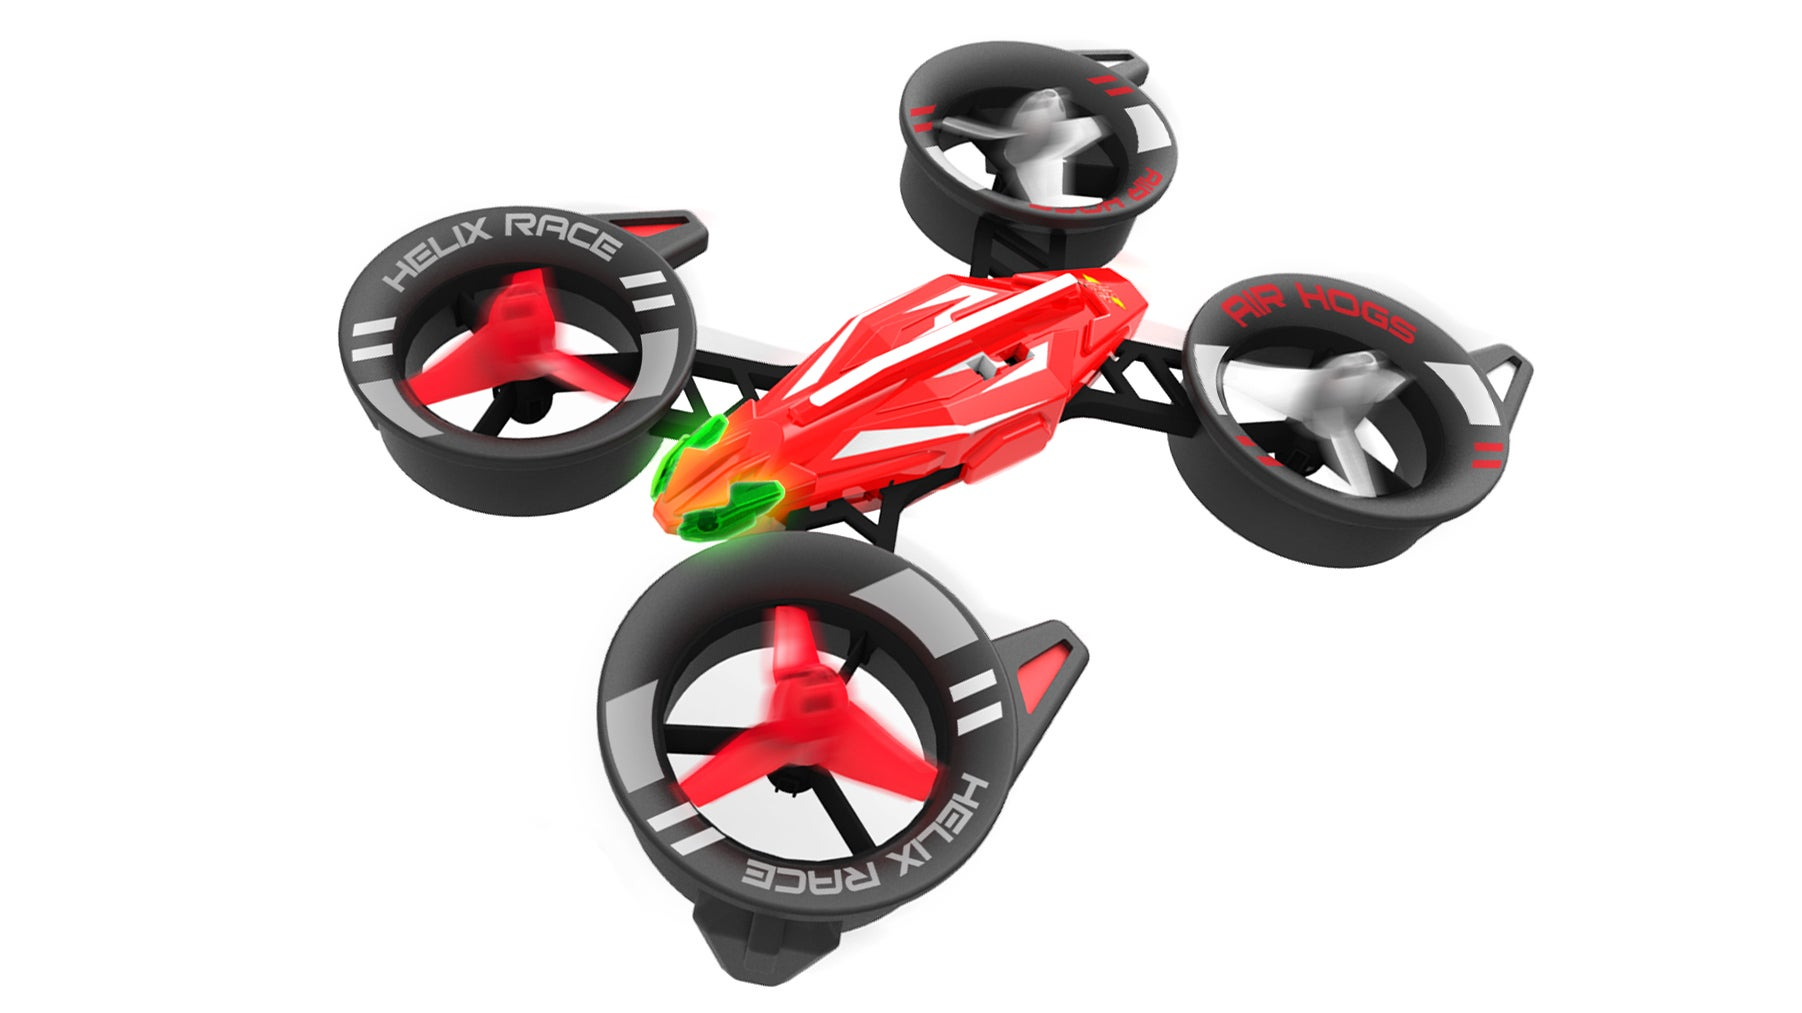 Air Hogs Tweaked The Helix To Be A Cheap Way Get Into Drone Racing